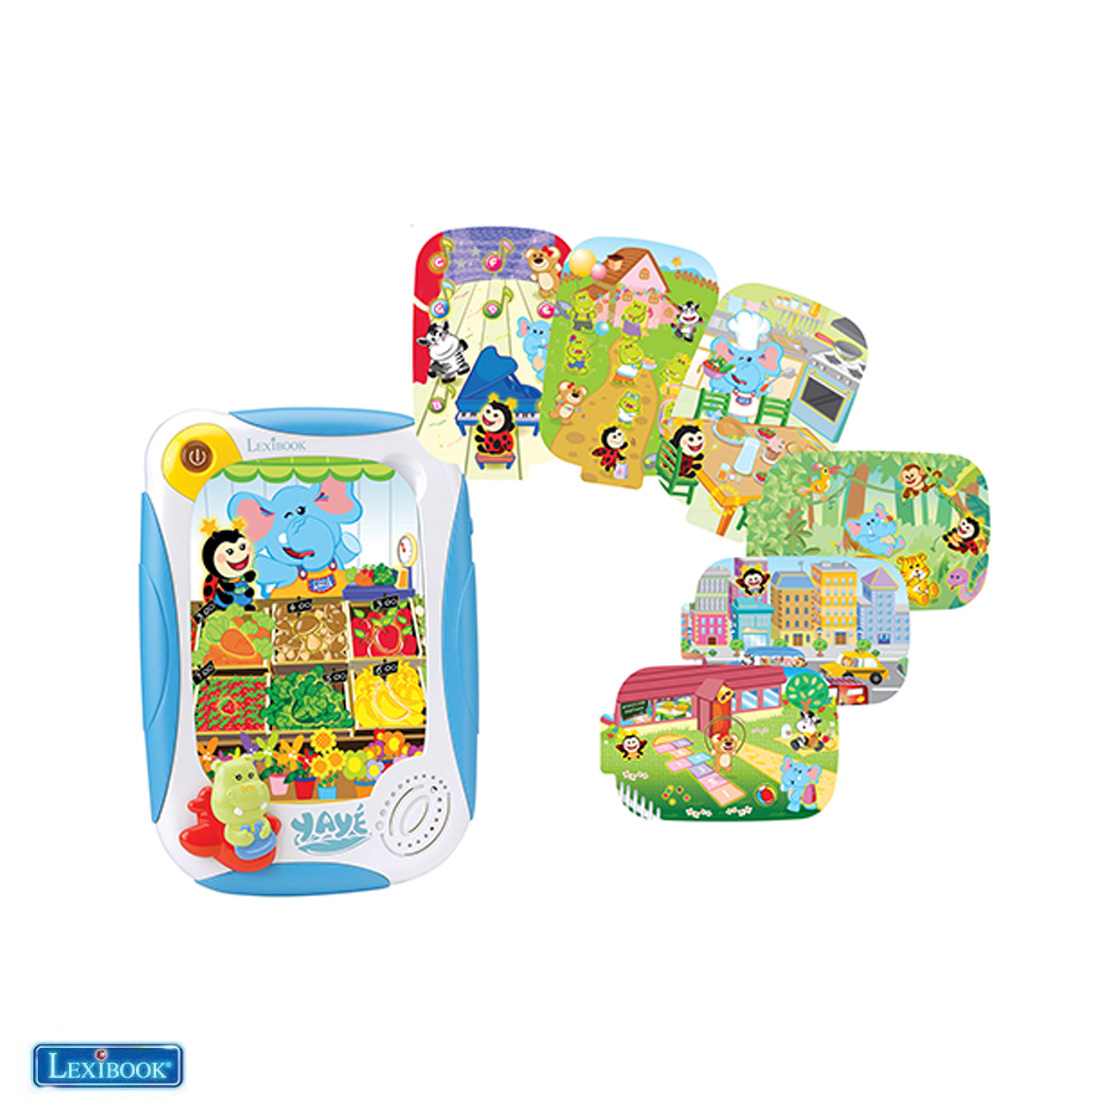 Yayé® My first educational tablet (ES/GB)_product